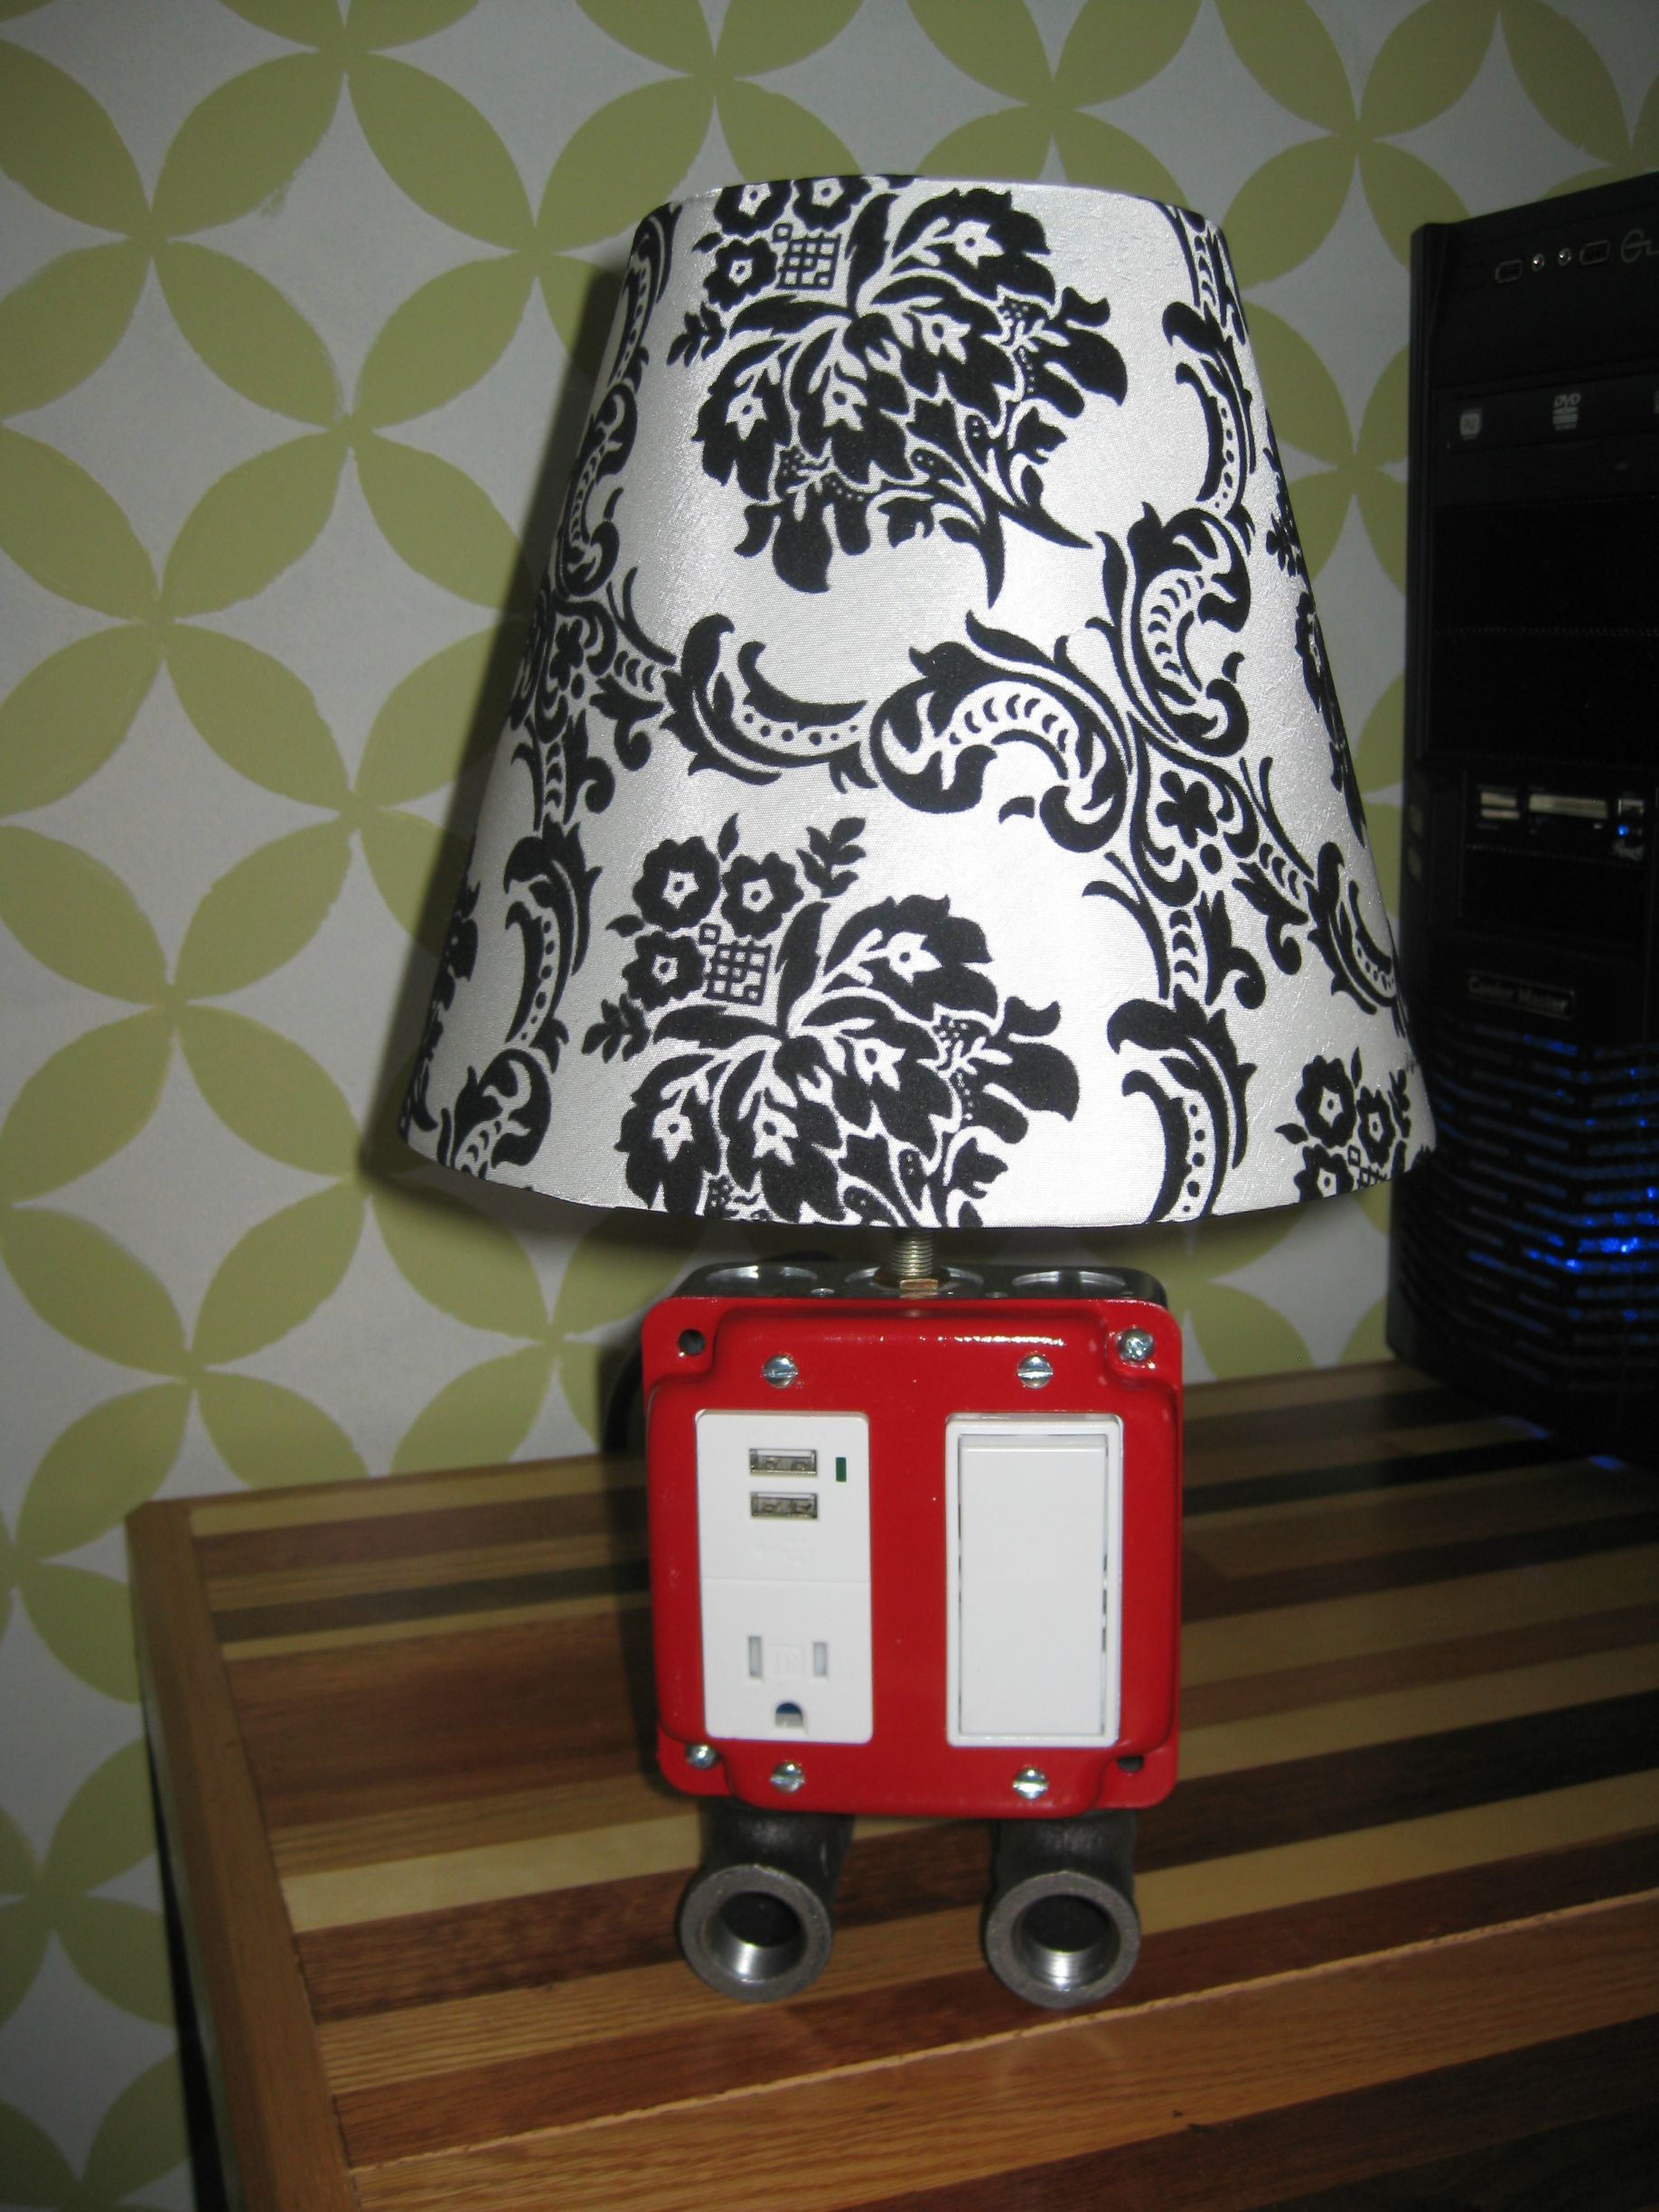 Lamp I saw on DIY a little while ago. - Imgur